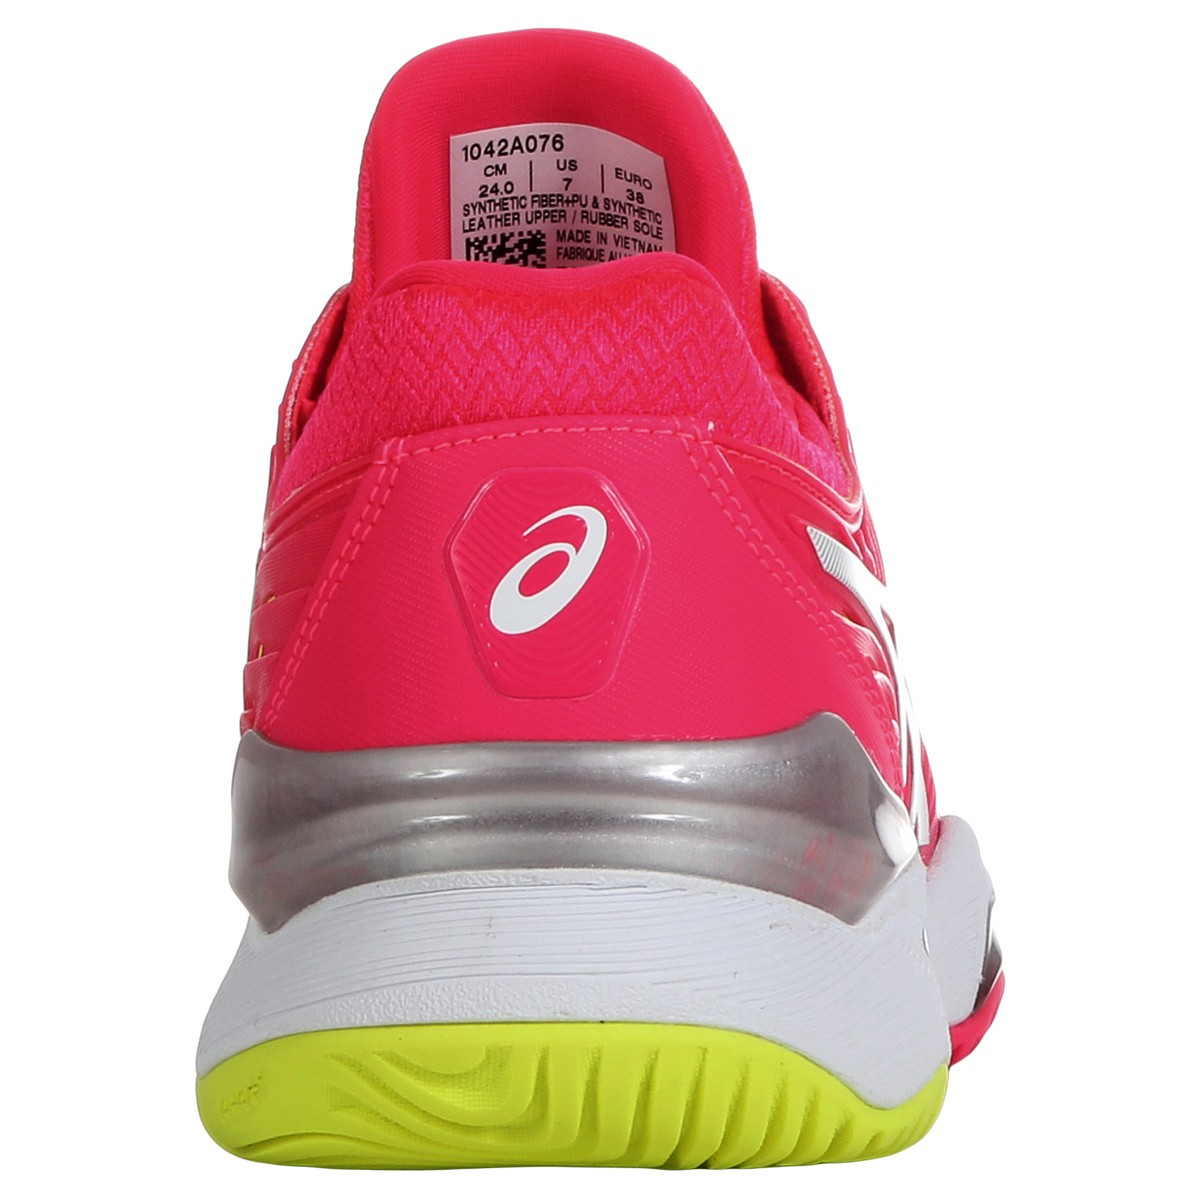 Asics Chaussures Court Ff Surfaces Femme 2 0 Toutes ul1FKJc3T